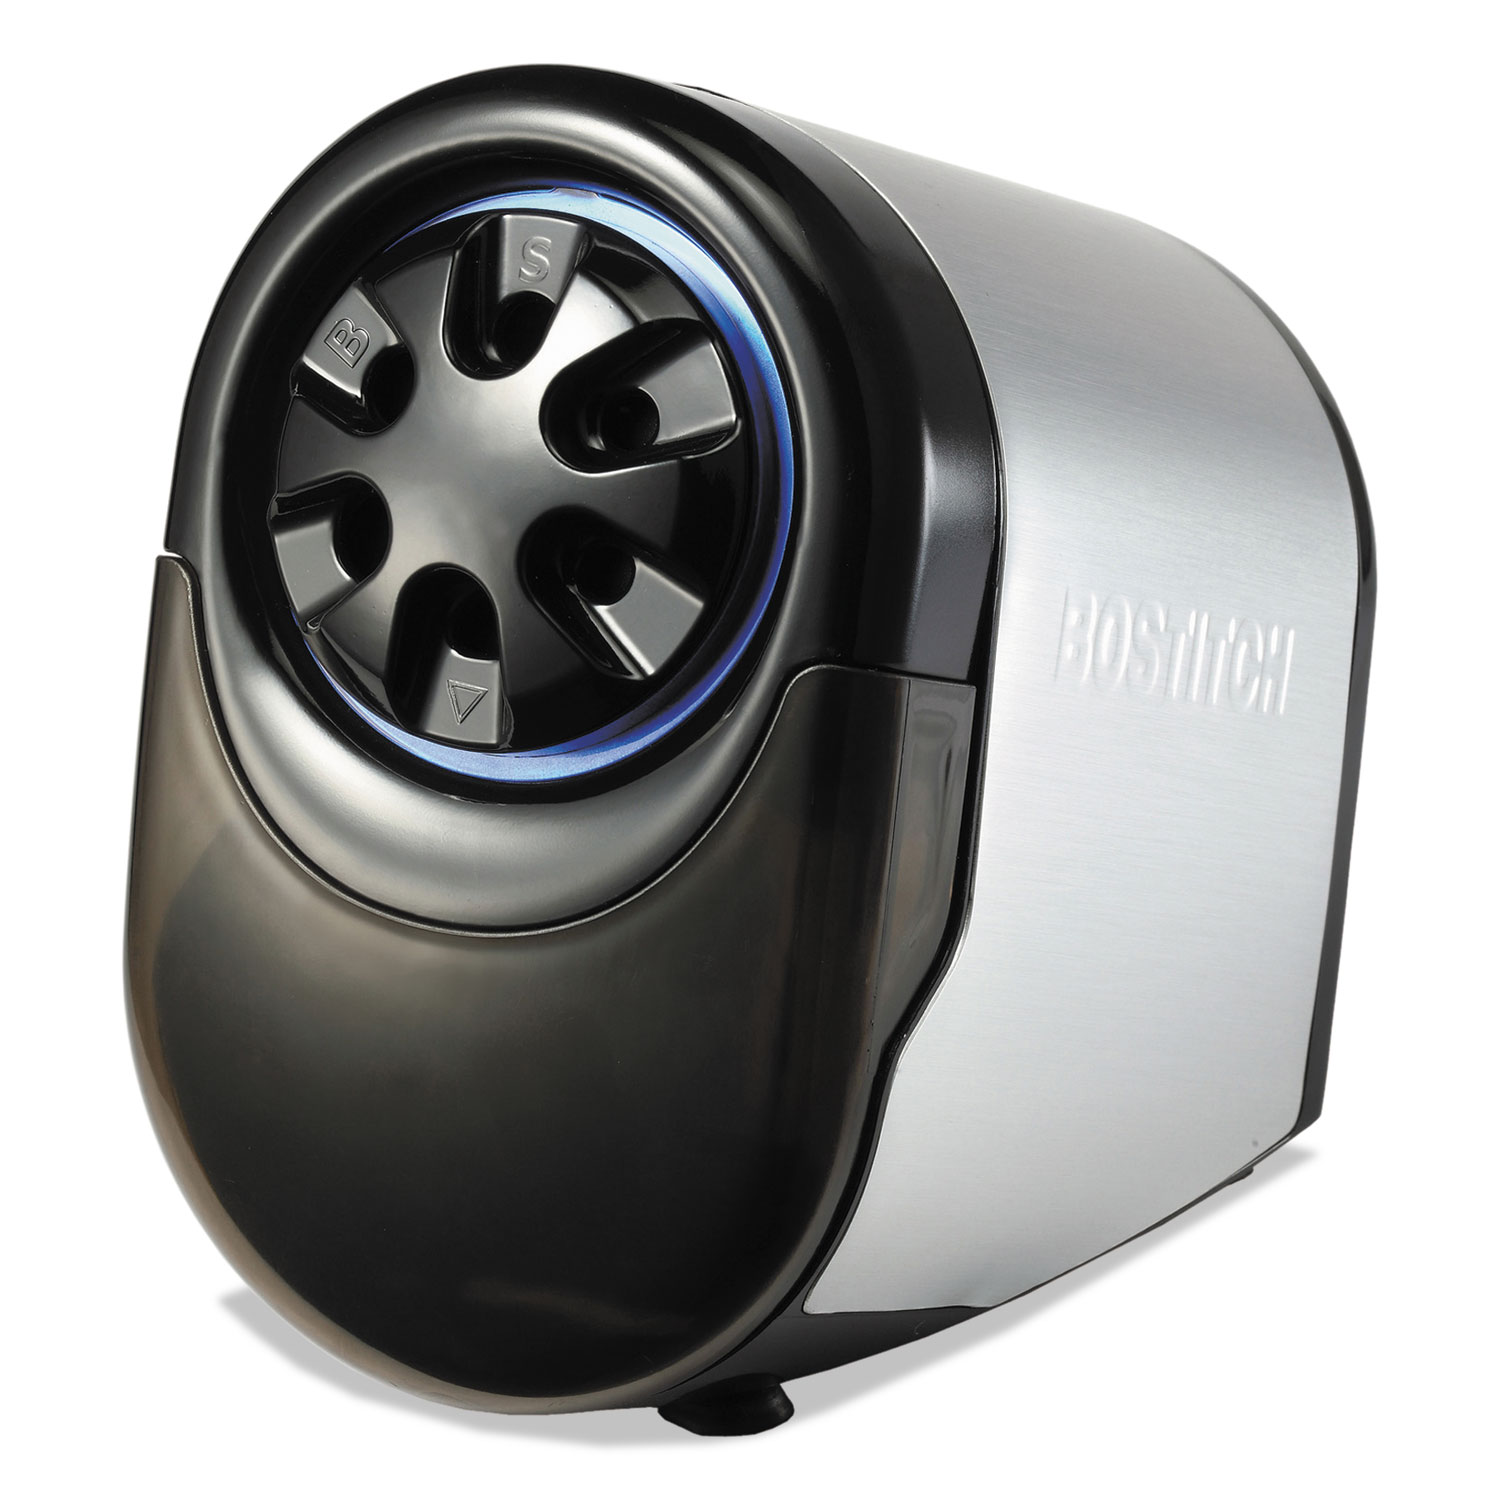 "QuietSharp Glow Classroom Electric Pencil Sharpener, AC-Powered, 6.13"" x 10.69"" x 9"", Silver/Black"